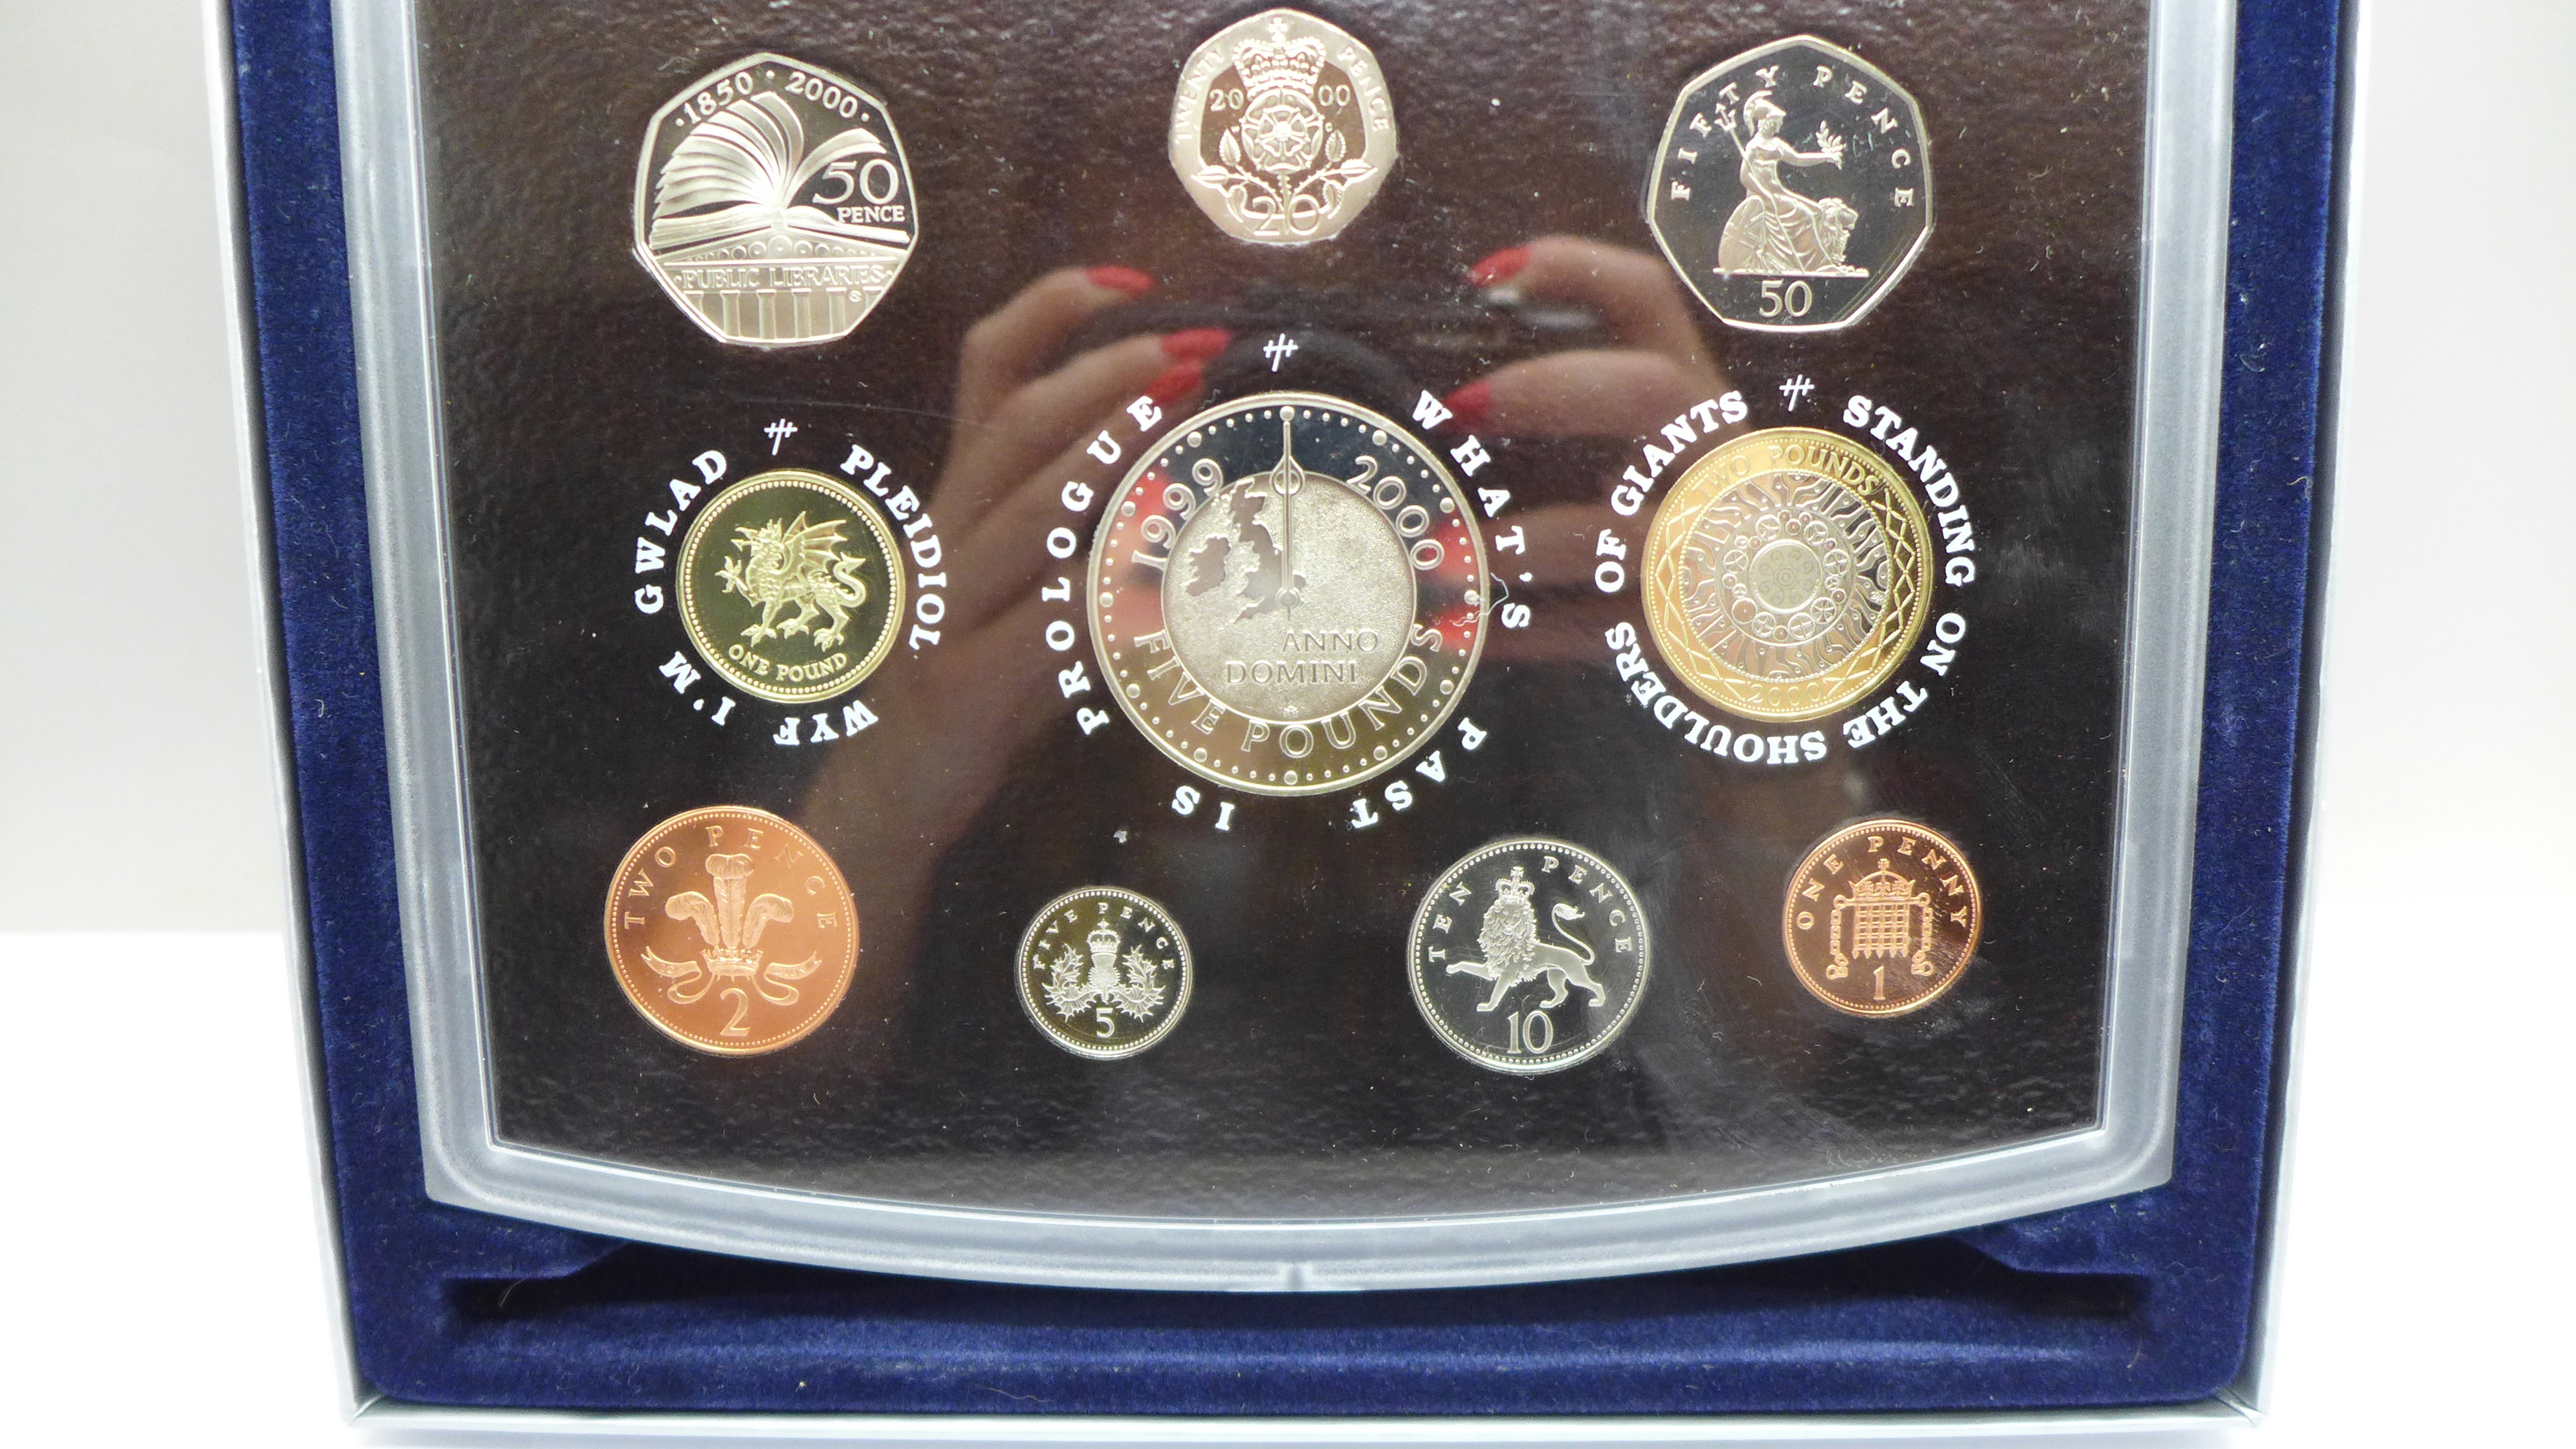 A Royal Mint Millennium proof coin set, 2000, boxed - Image 3 of 3